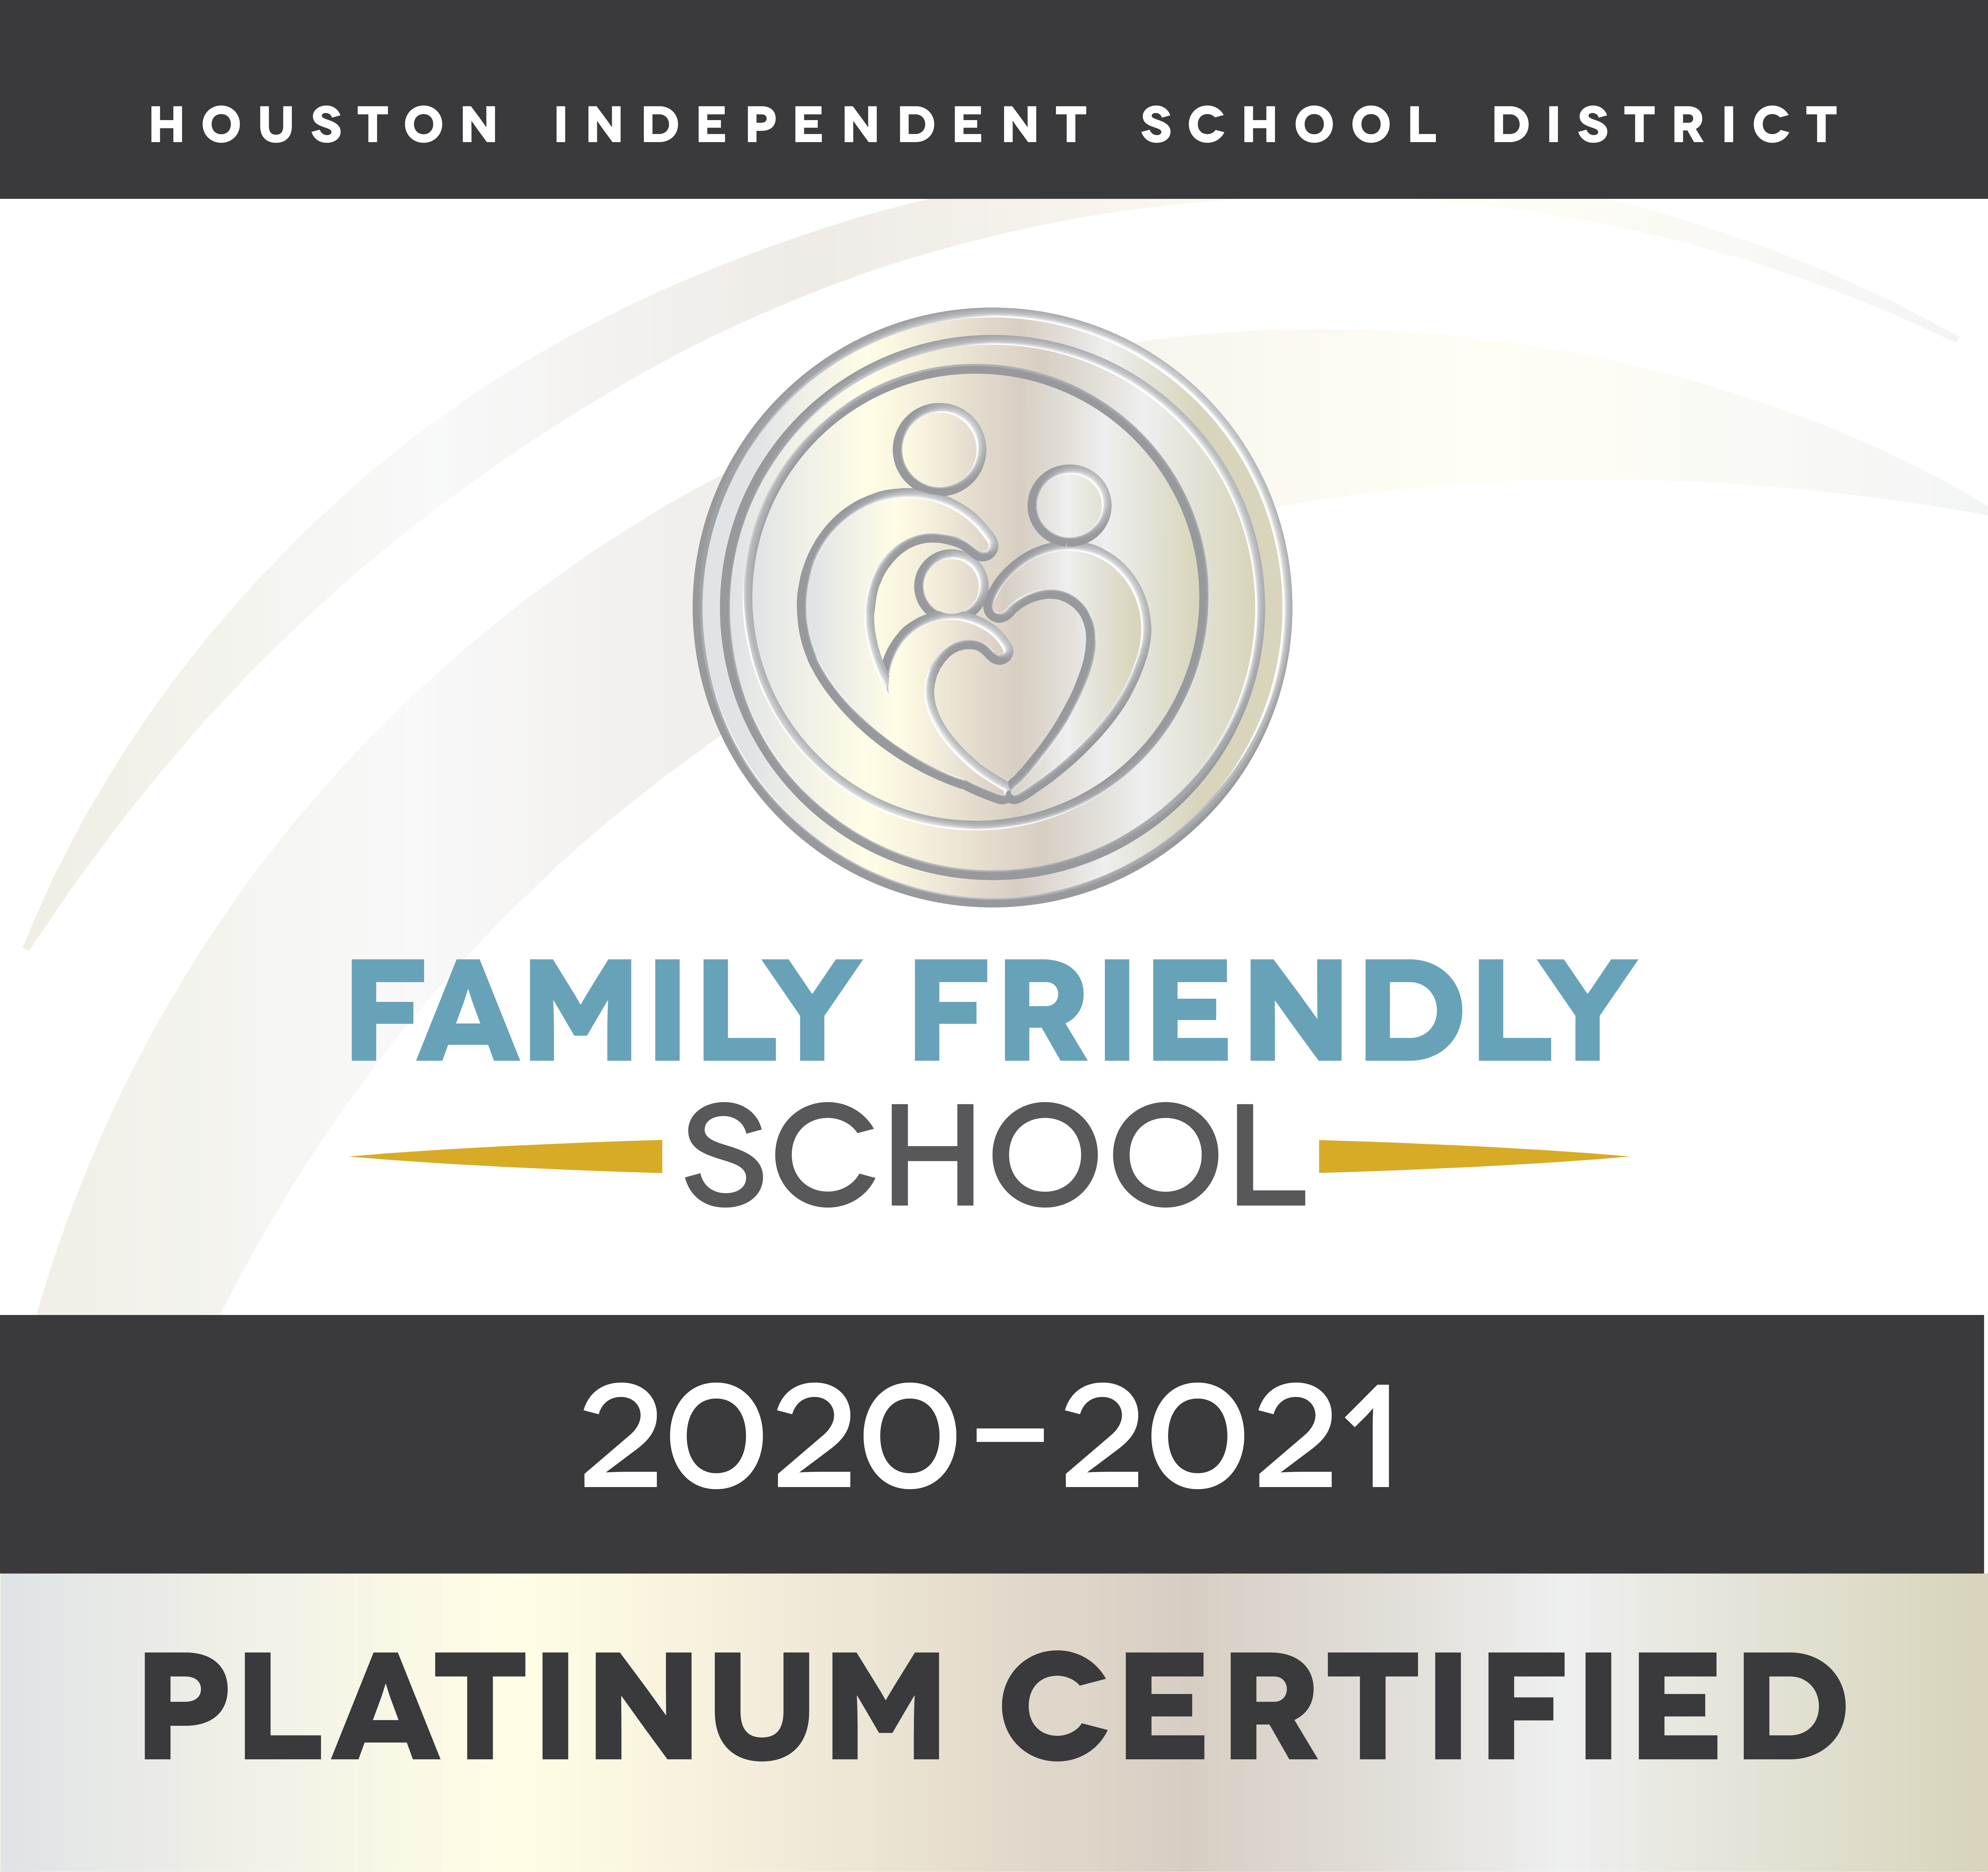 This campus is a Platinum Certified Family Friendly School